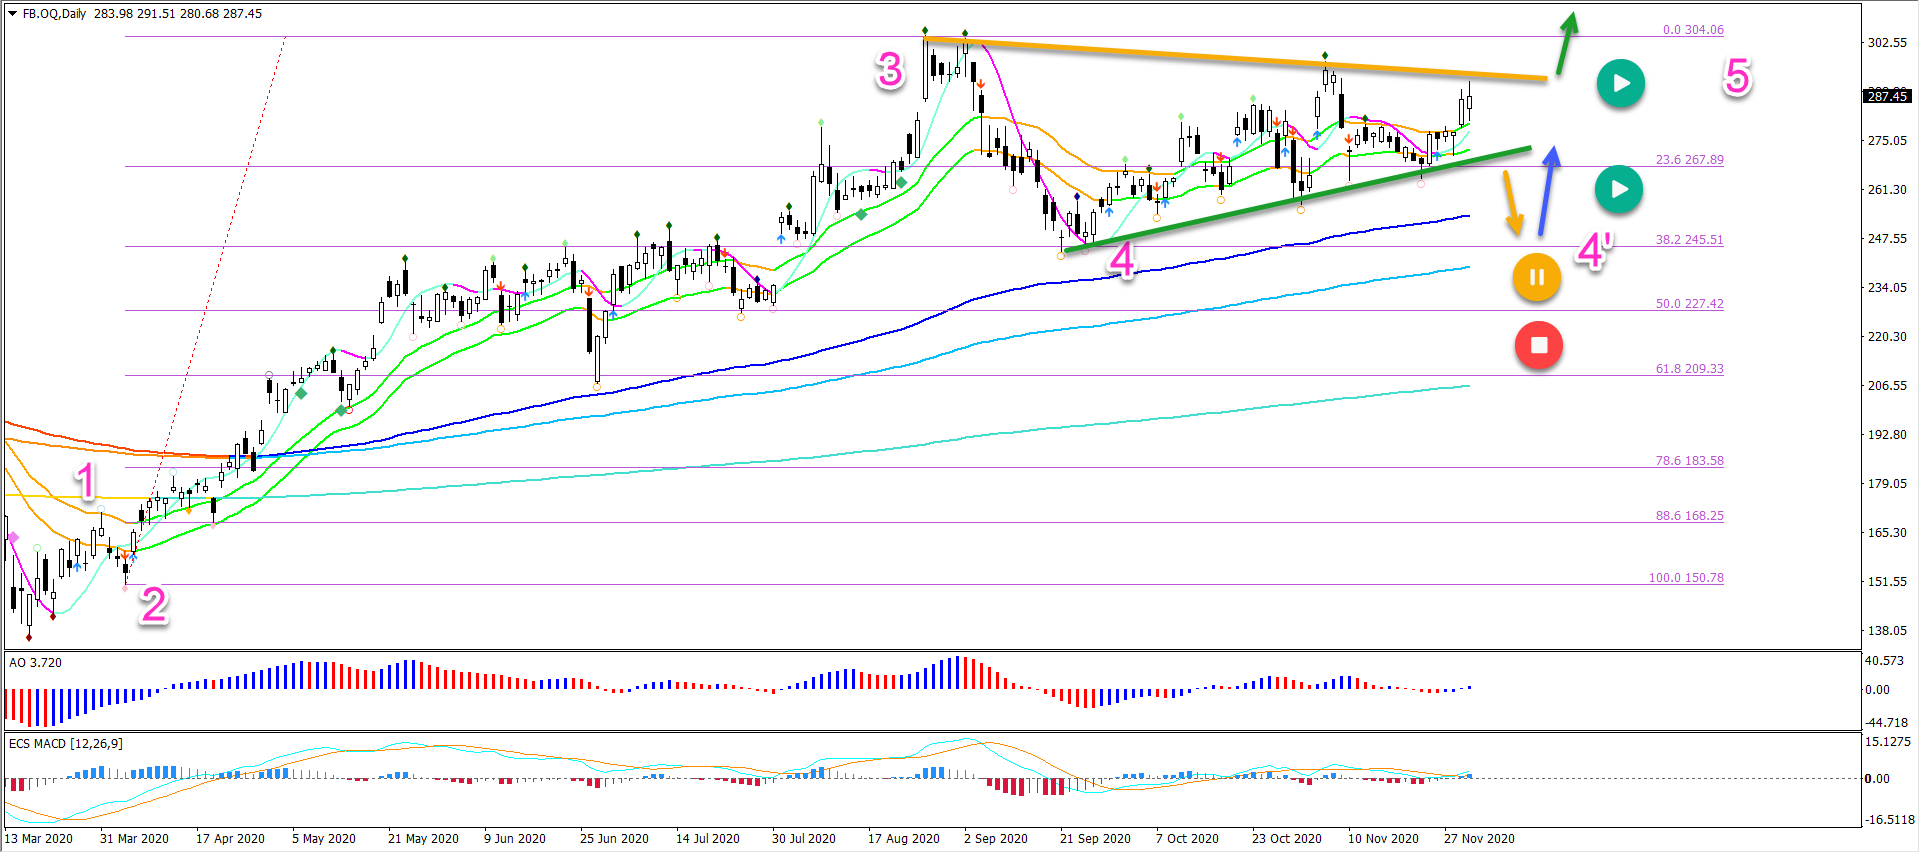 Facebook daily chart 03.12.20